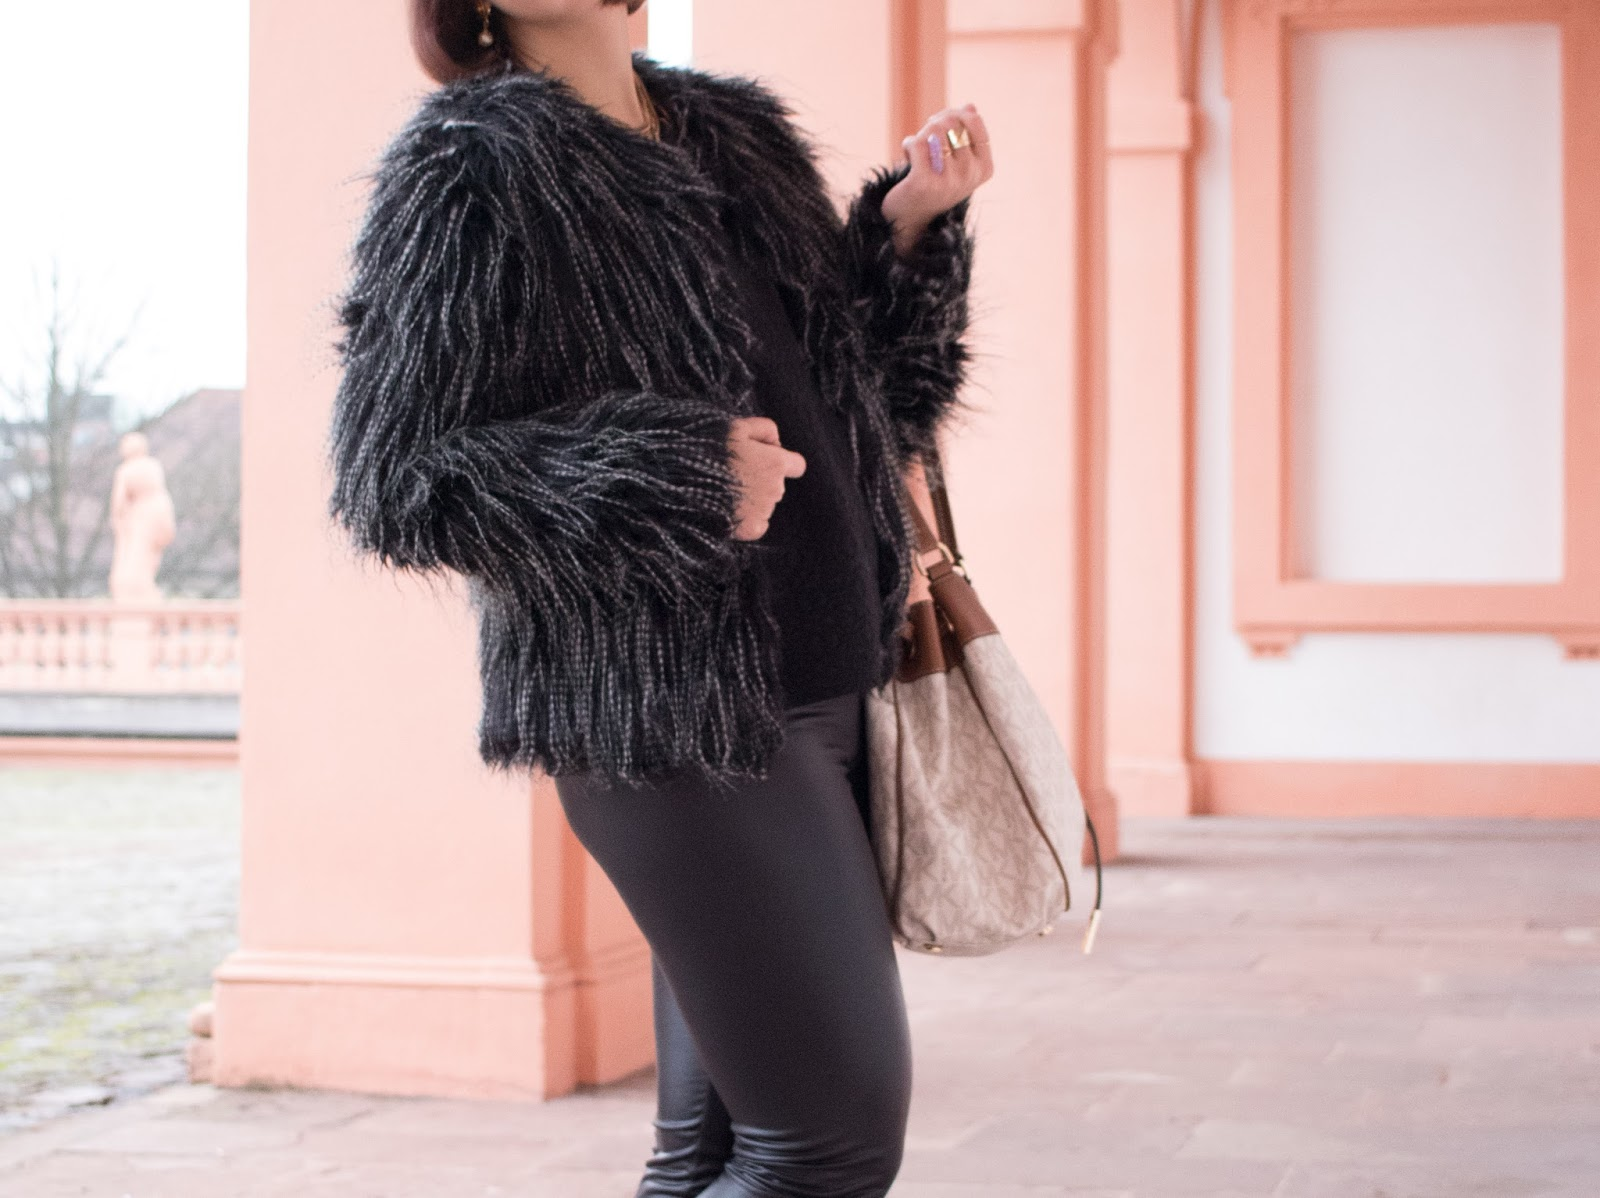 97e12680d548a6 faux fur jacket: newchic (DIRECT LINK) | sweater: via kleiderkreisel.de  (similar here) | black faux leather leggings: futuro fashion, via amazon.de  (DIRECT ...